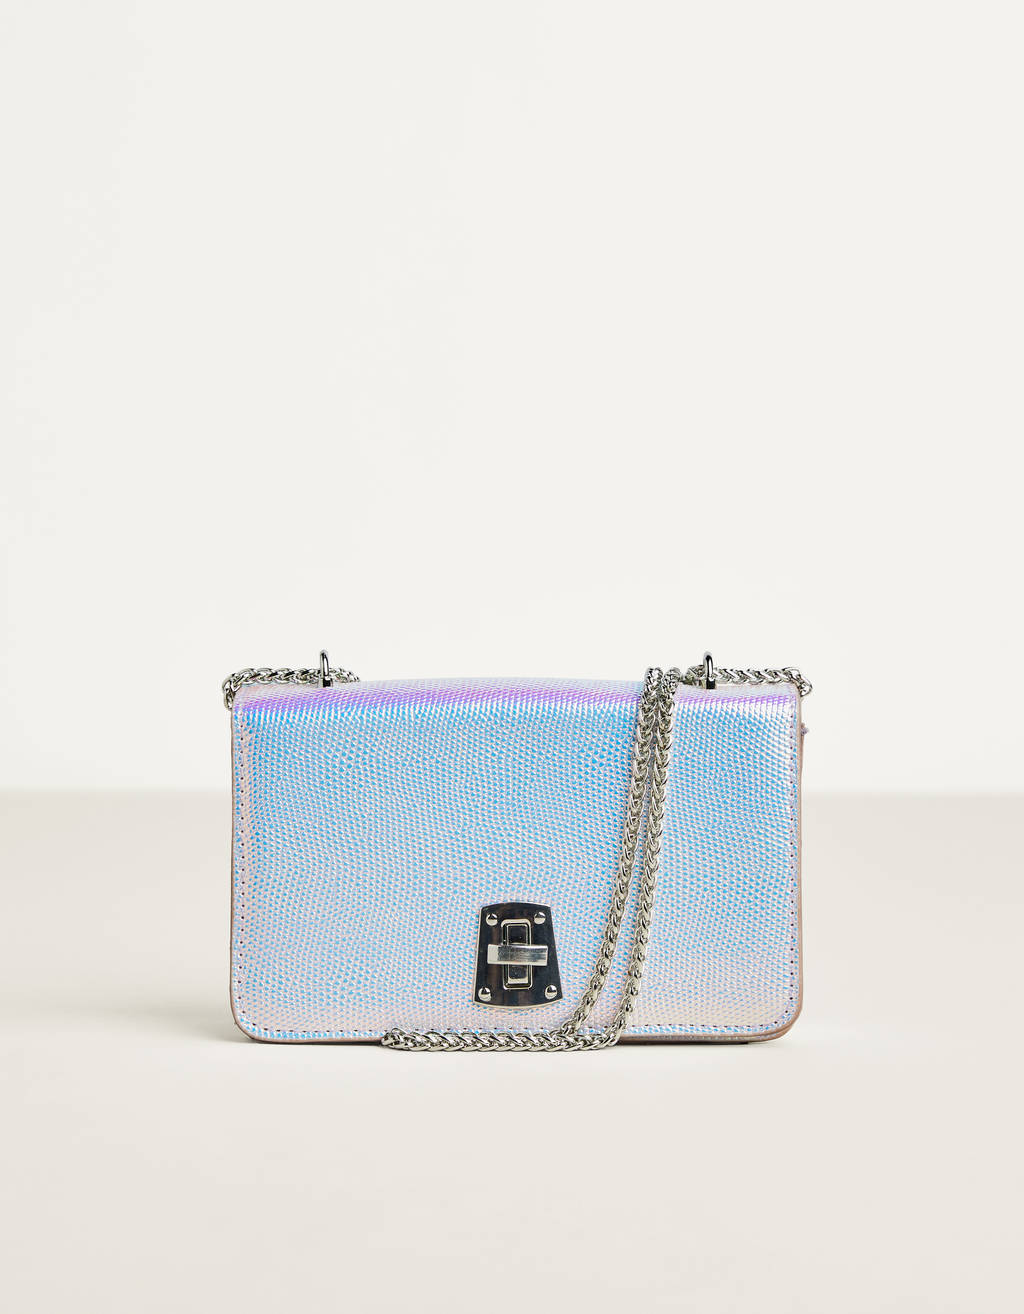 Iridescent handbag with chain